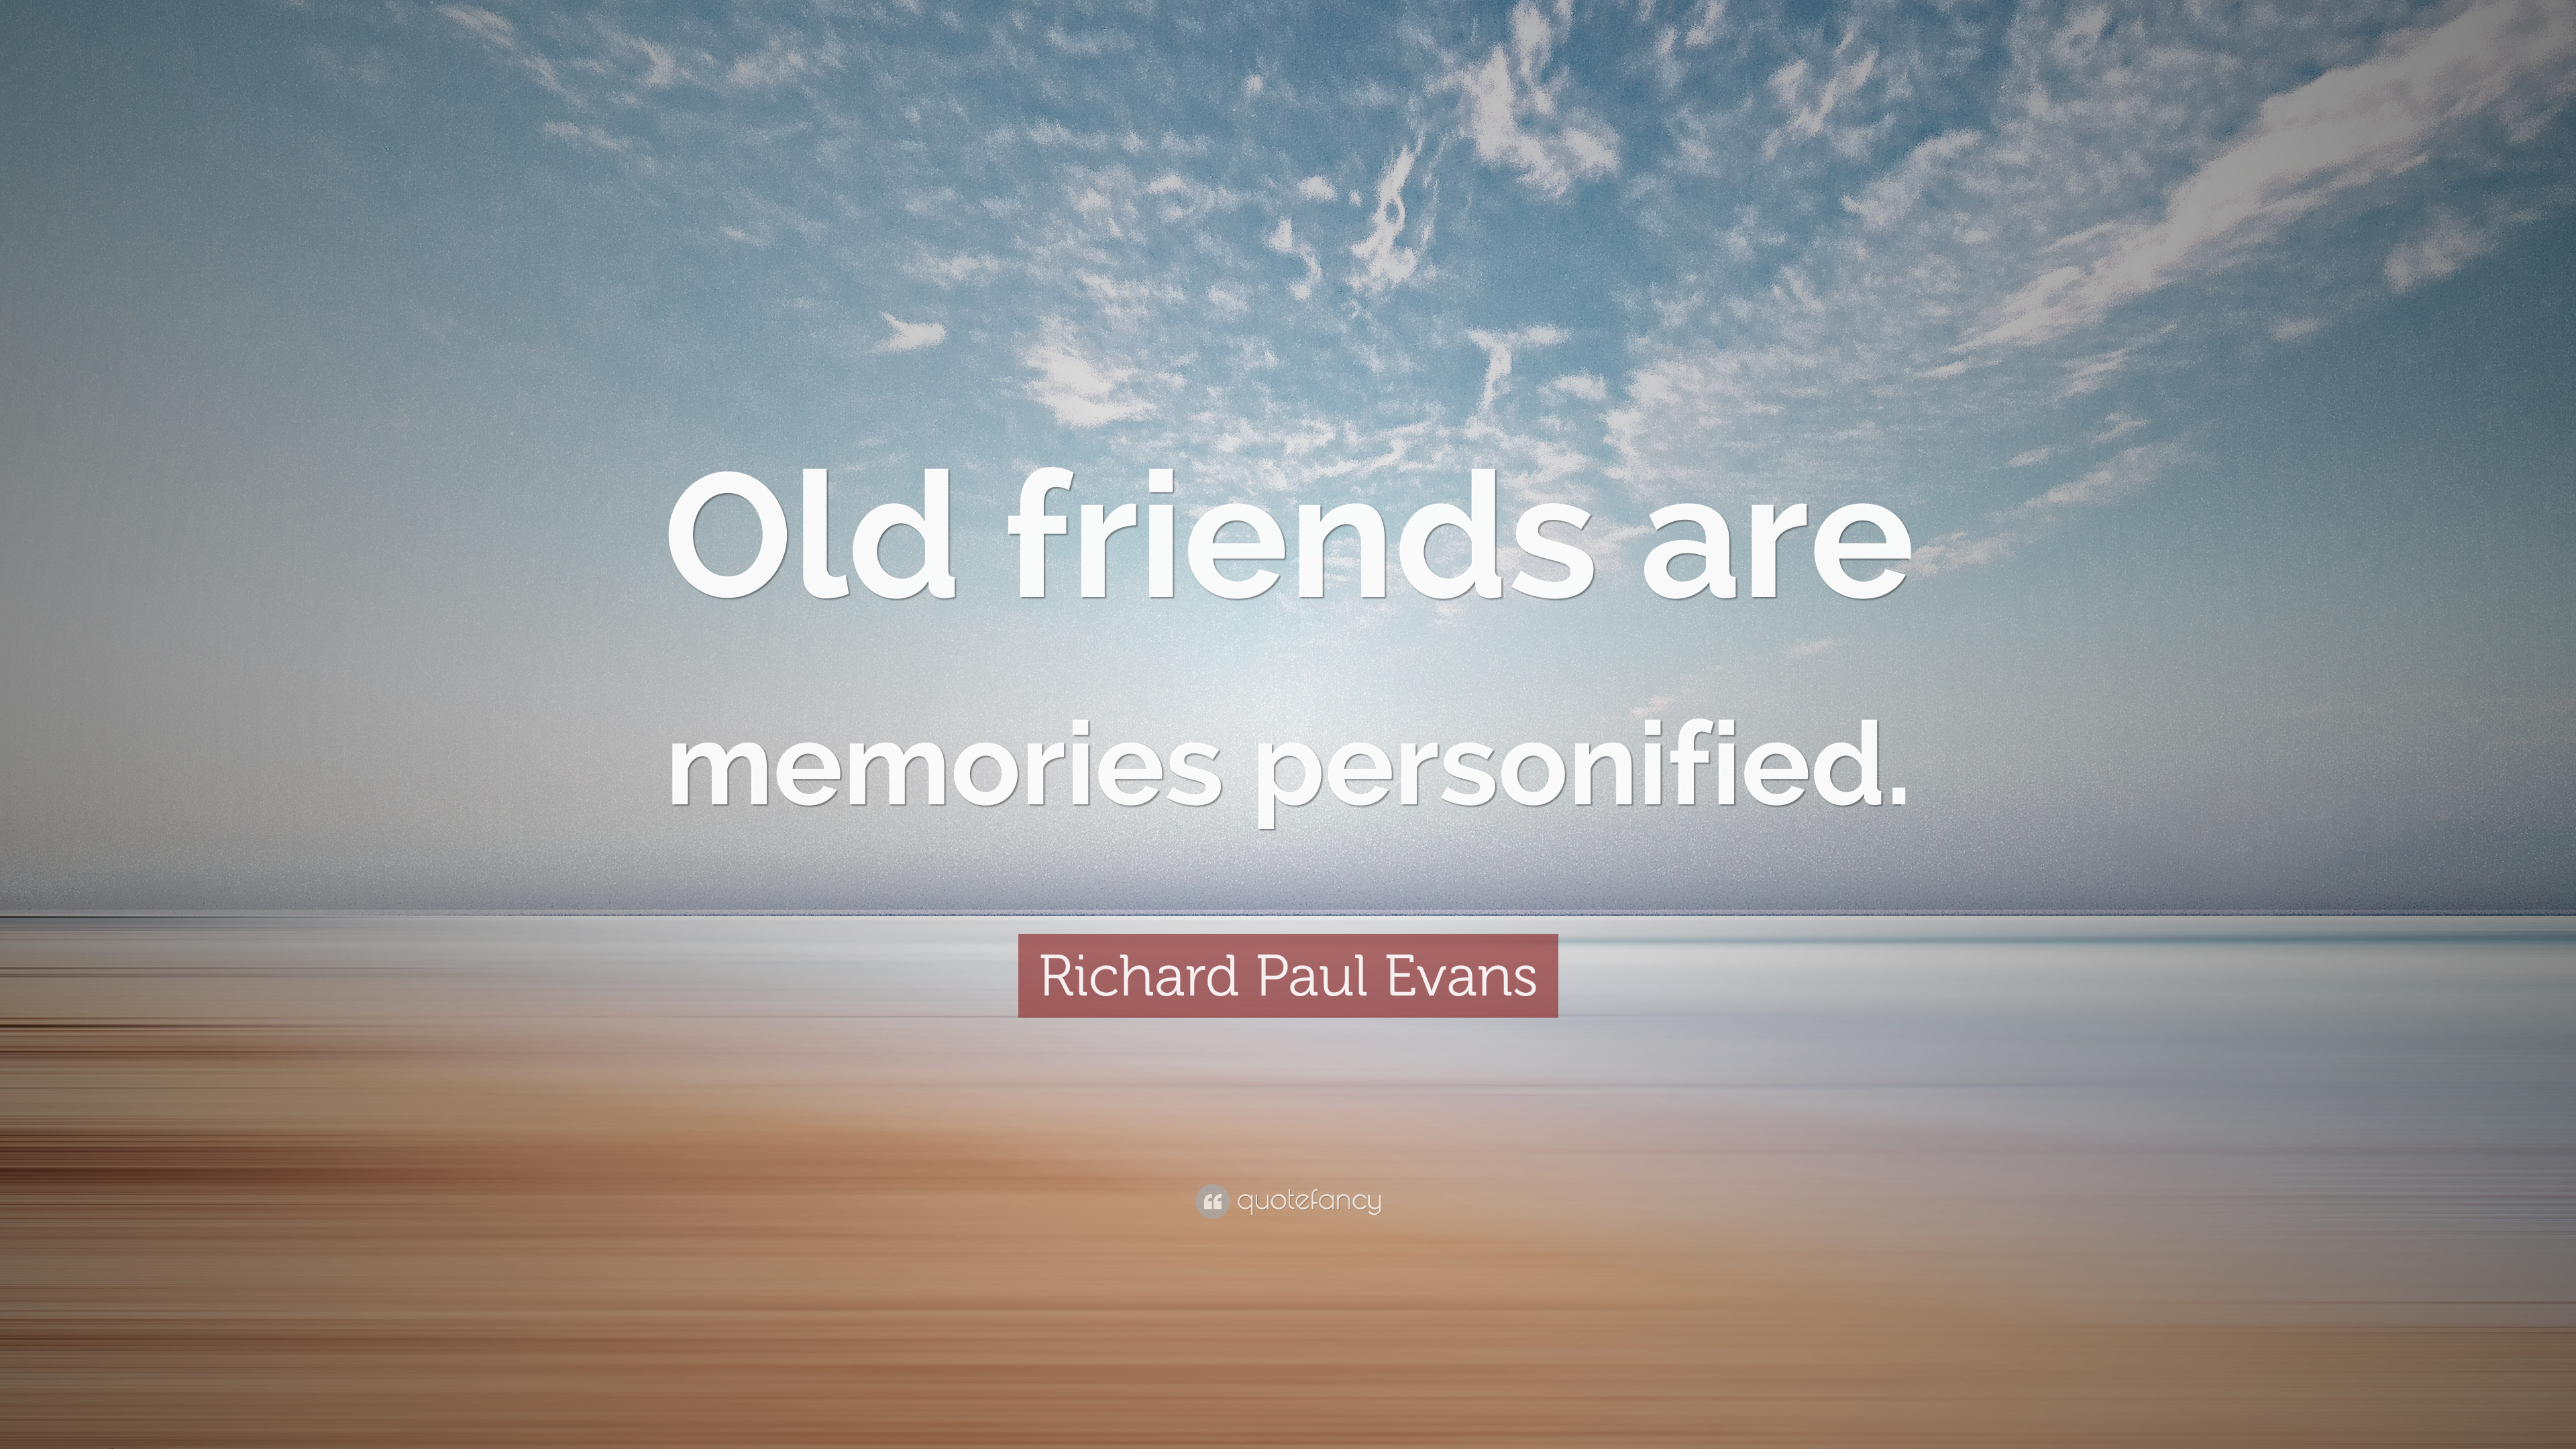 Richard paul evans quote old friends are memories personified